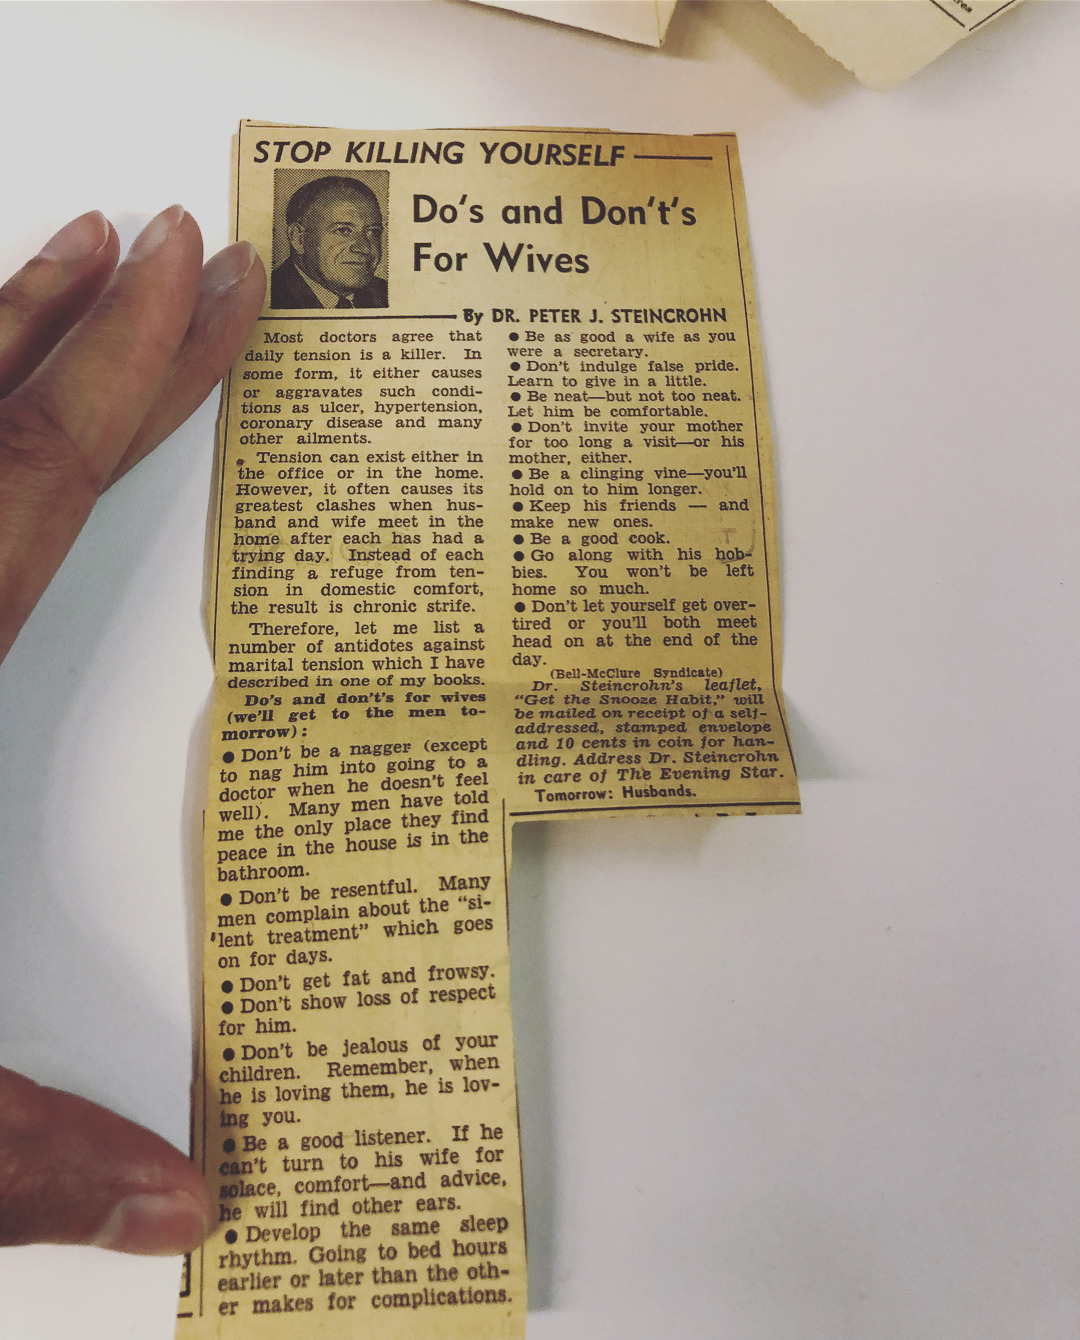 """Those out there with wives or husbands and need advice …. I found these news clippings from the late '60s in one of my grandmother's trunks. Dr. Steincrohn has some gems. """"Listen to her business advice; then take it or leave it,"""" AND my favorite … """"Be as good a wife as you were a secretary."""" 😂😂😂😂 Also, if you have a husband that's gone off his rocker … Philip H. Love has something for that, too. Keep scrolling. I love finding things my grandparents left behind, clues about how hard they tried to love each other. #@brownbookworm #brownbookworm#dhonielle clayton#instagram #dr. peter j. steincrohn  #dr peter j steincrohn  #peter j. steincrohn  #peter j steincrohn #newspaper clippings #philip h. love  #philip h love #advice#marriage"""